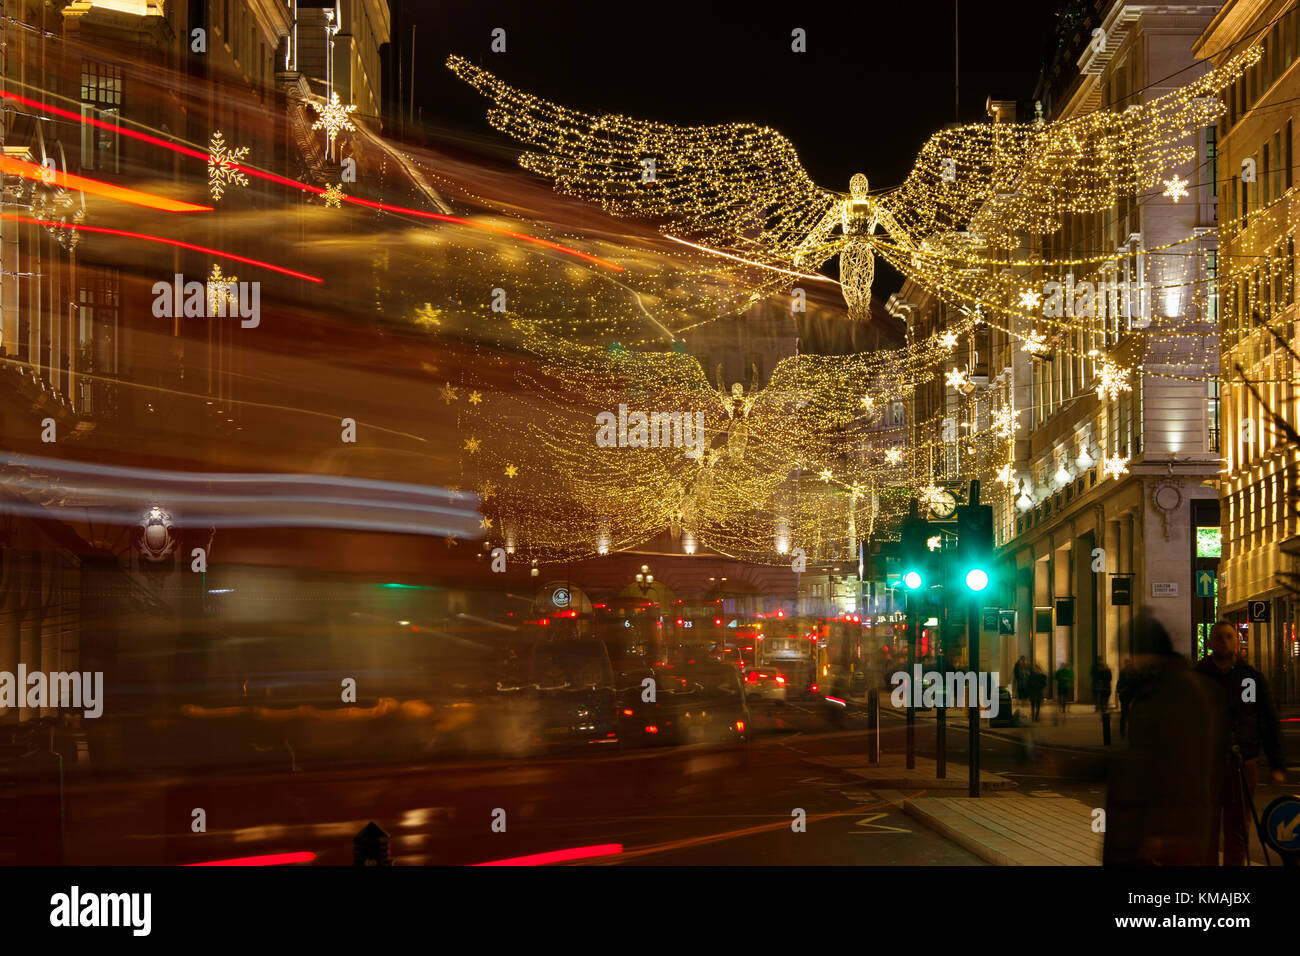 LONDON, UK   DECEMBER 4th, 2017: Christmas Lights On Regents Street St  James. Beautiful Christmas Decorations Attract Shoppers And Tourists During  Th